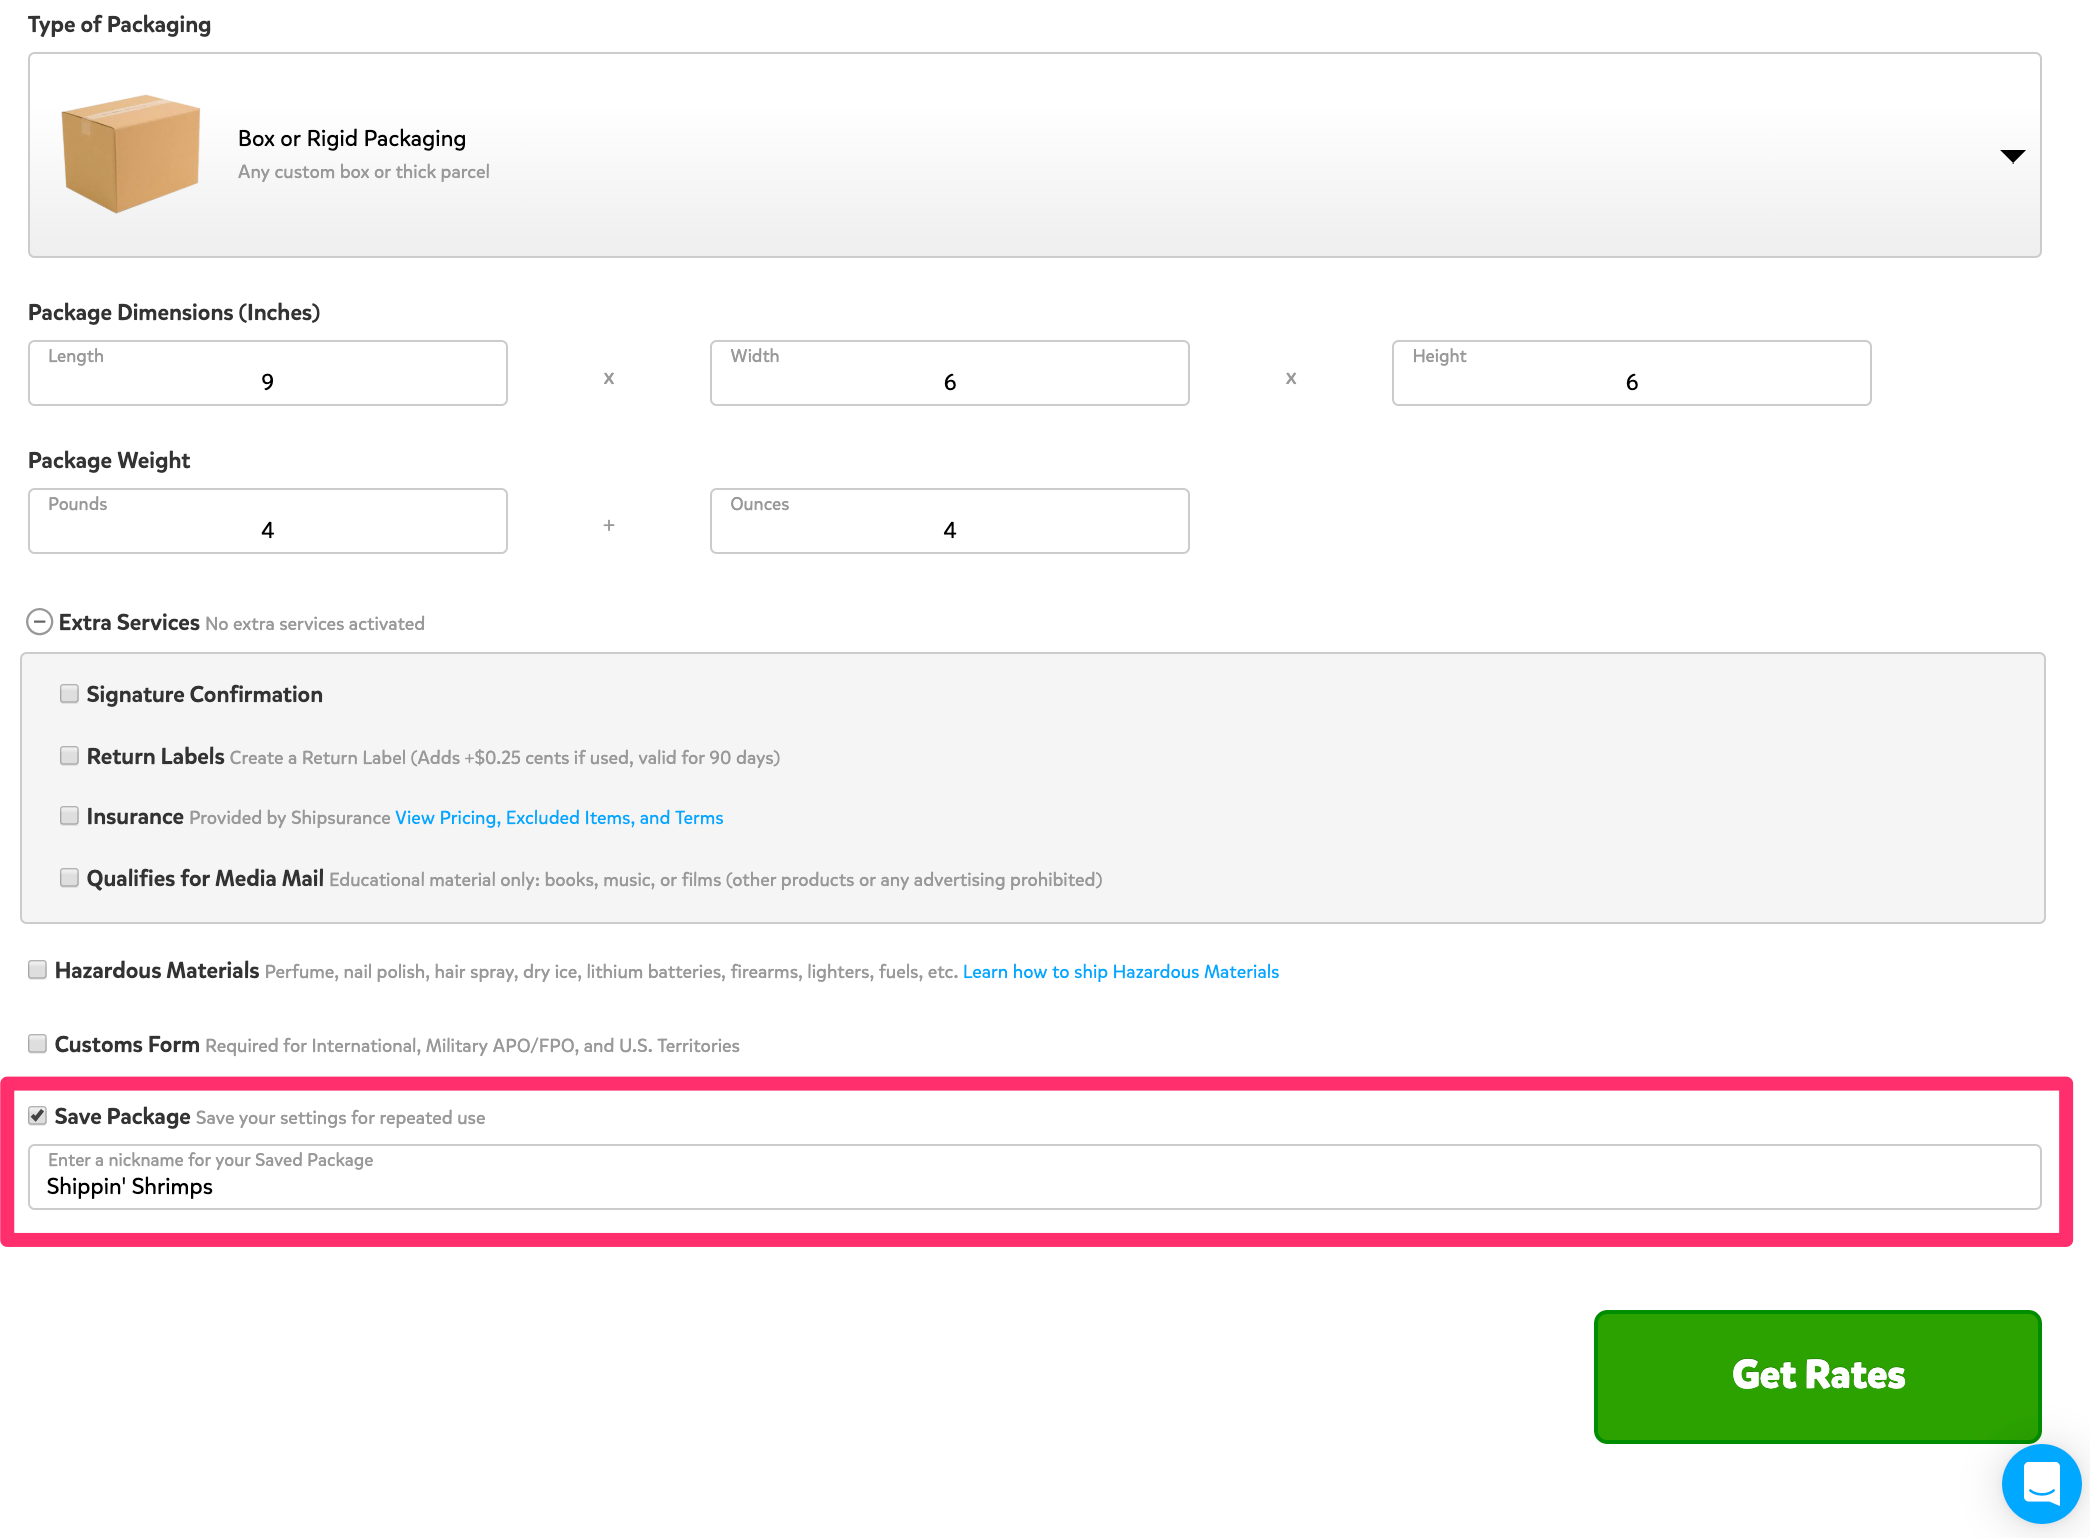 A screenshot showing the 'Create A Shipping Label Page' towards the bottom under where the packaging details are entered. At the bottom of the form, a section is highlighted where you can check to 'Save Package,' and enter a name for the package.